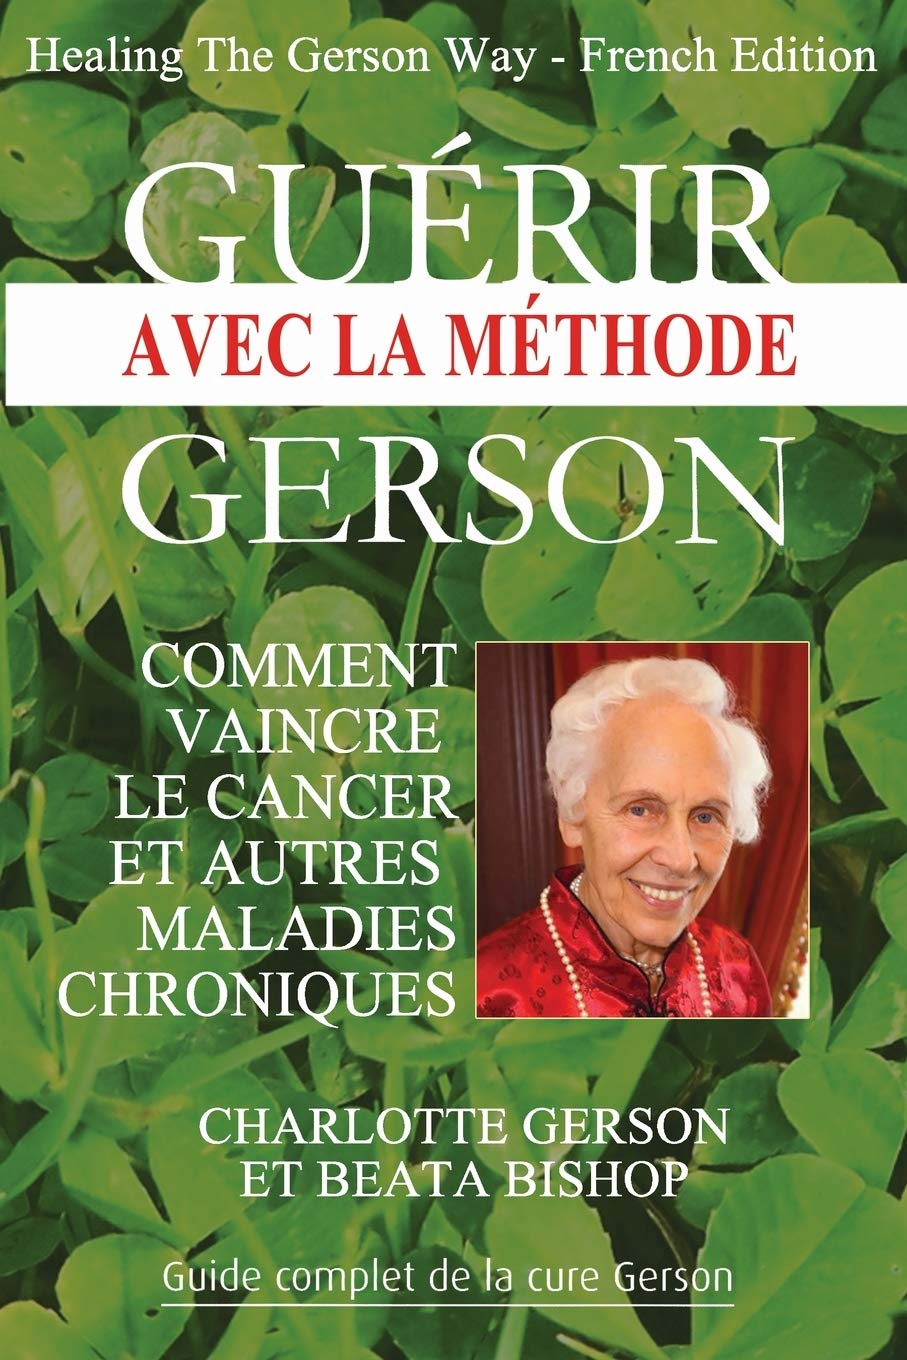 Guérir Avec La Méthode Gerson - Healing The Gerson Way: French Edition